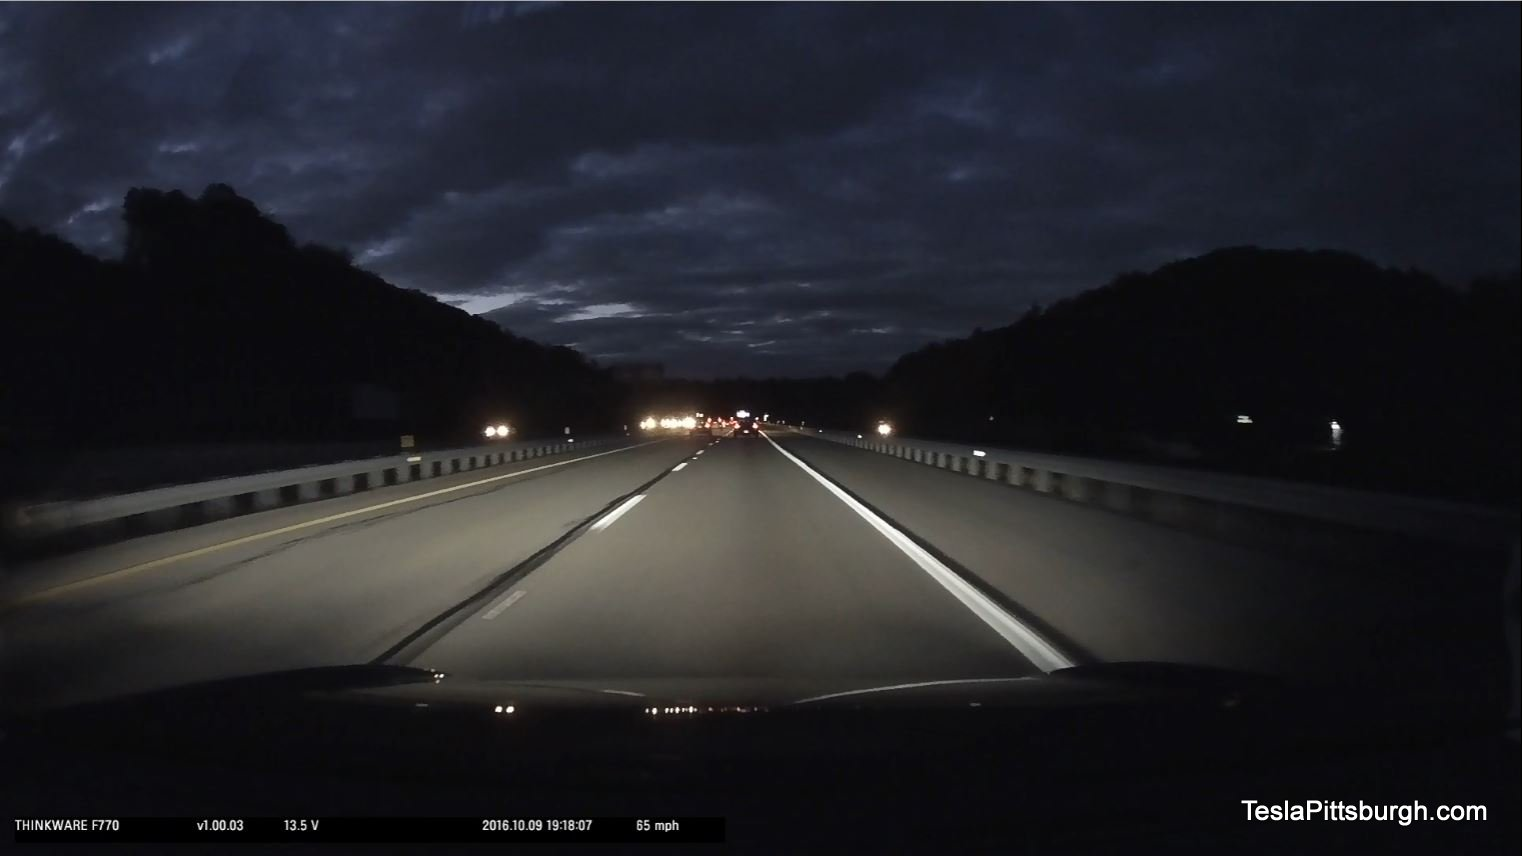 tesla-pittsburgh-dashcam-review-thinkware-f770-camera-279-night-straight